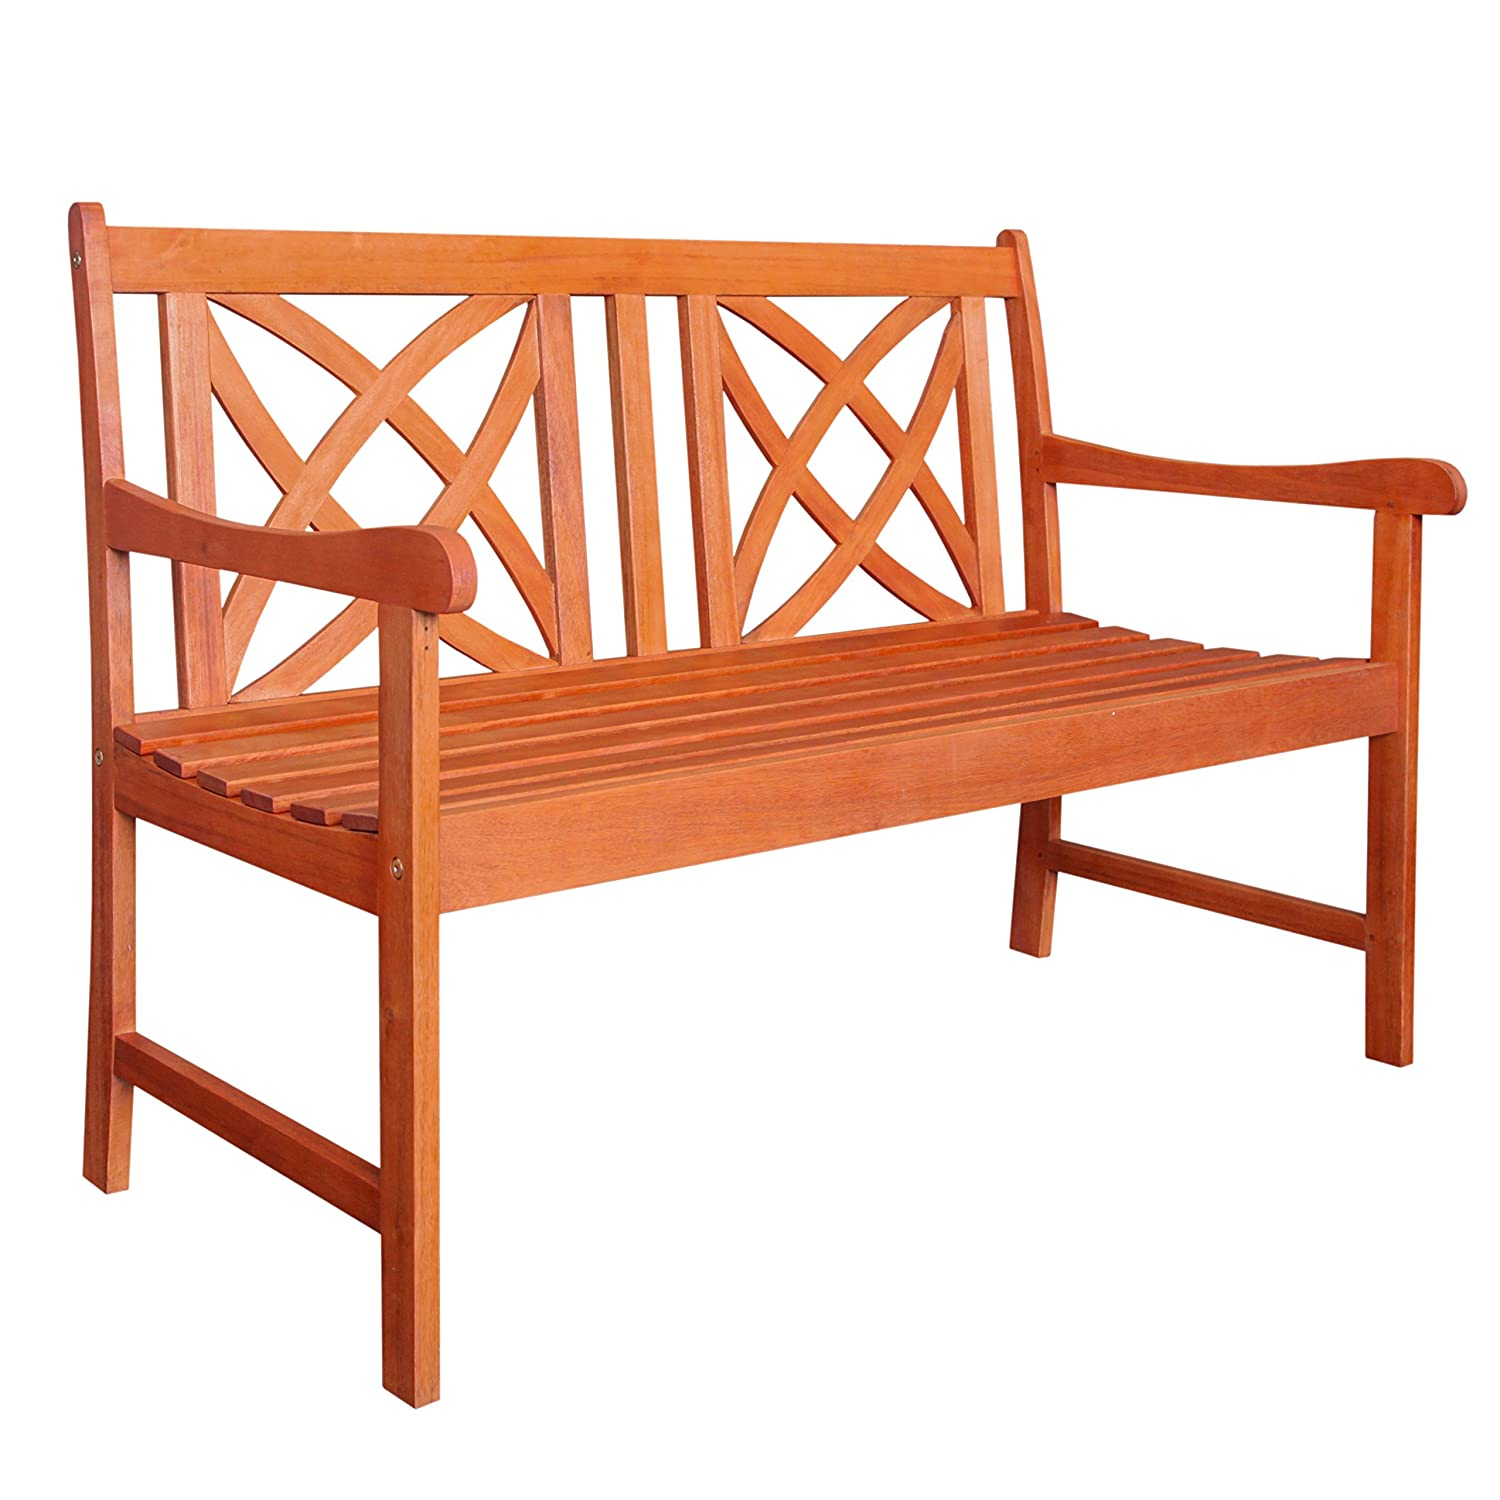 Vifah V1493 Outdoor Wood Garden Bench, 48.00 x 24.00 x 34.00/4', Brown